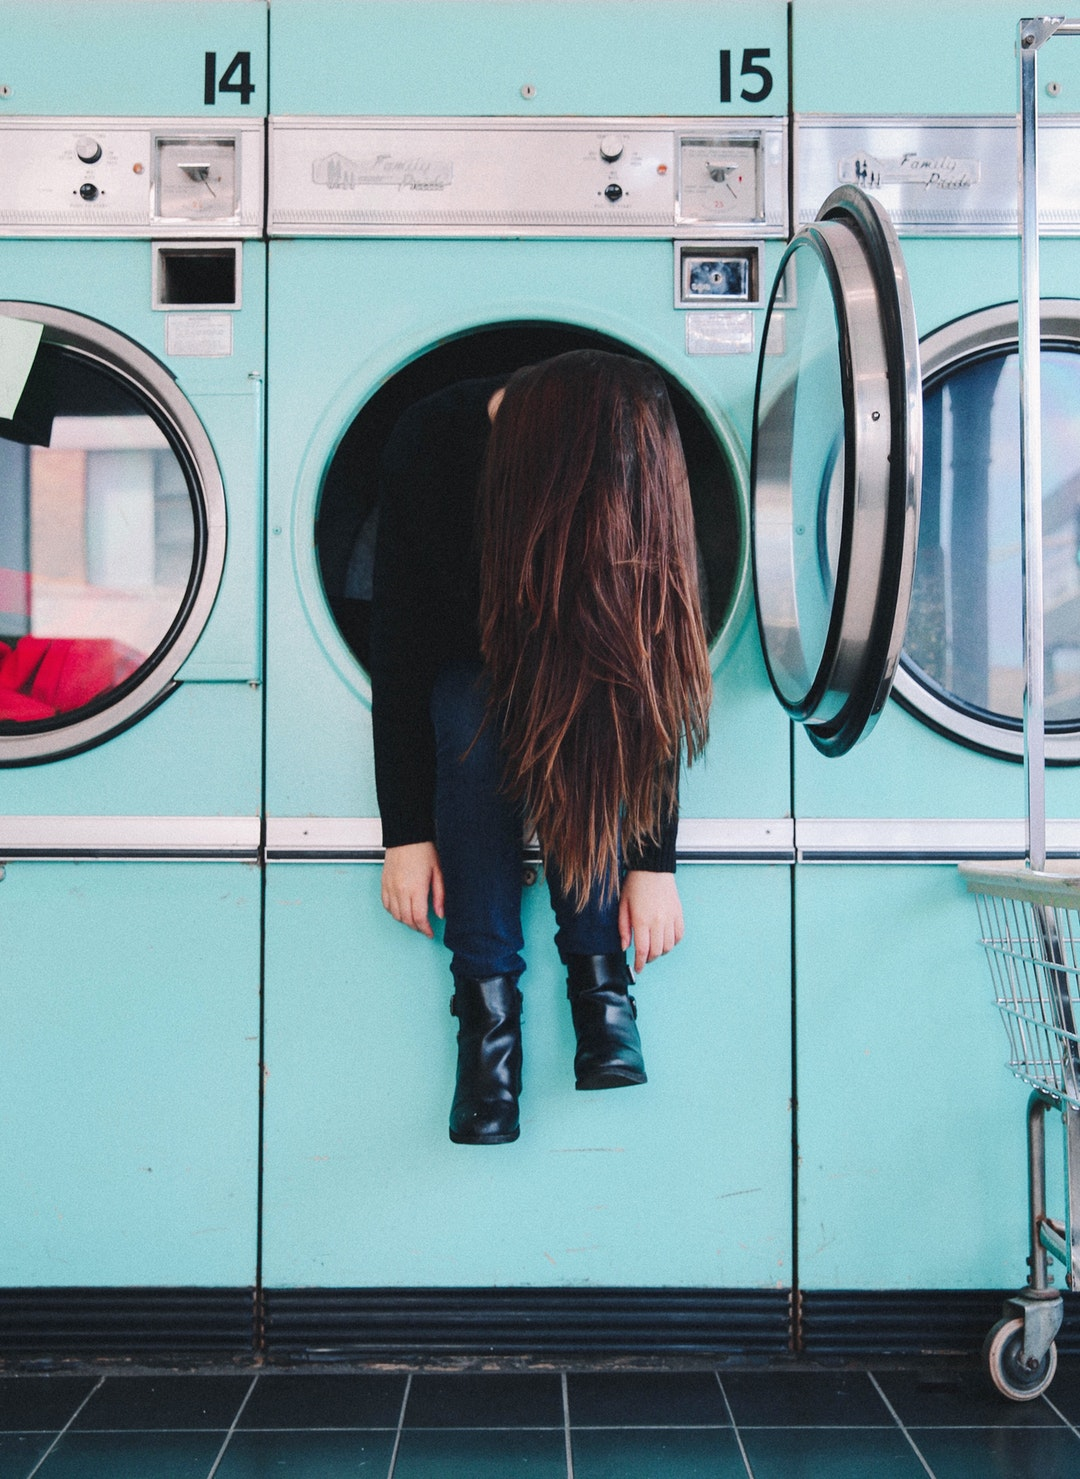 A person hanging out of a dryer at a laundromat.